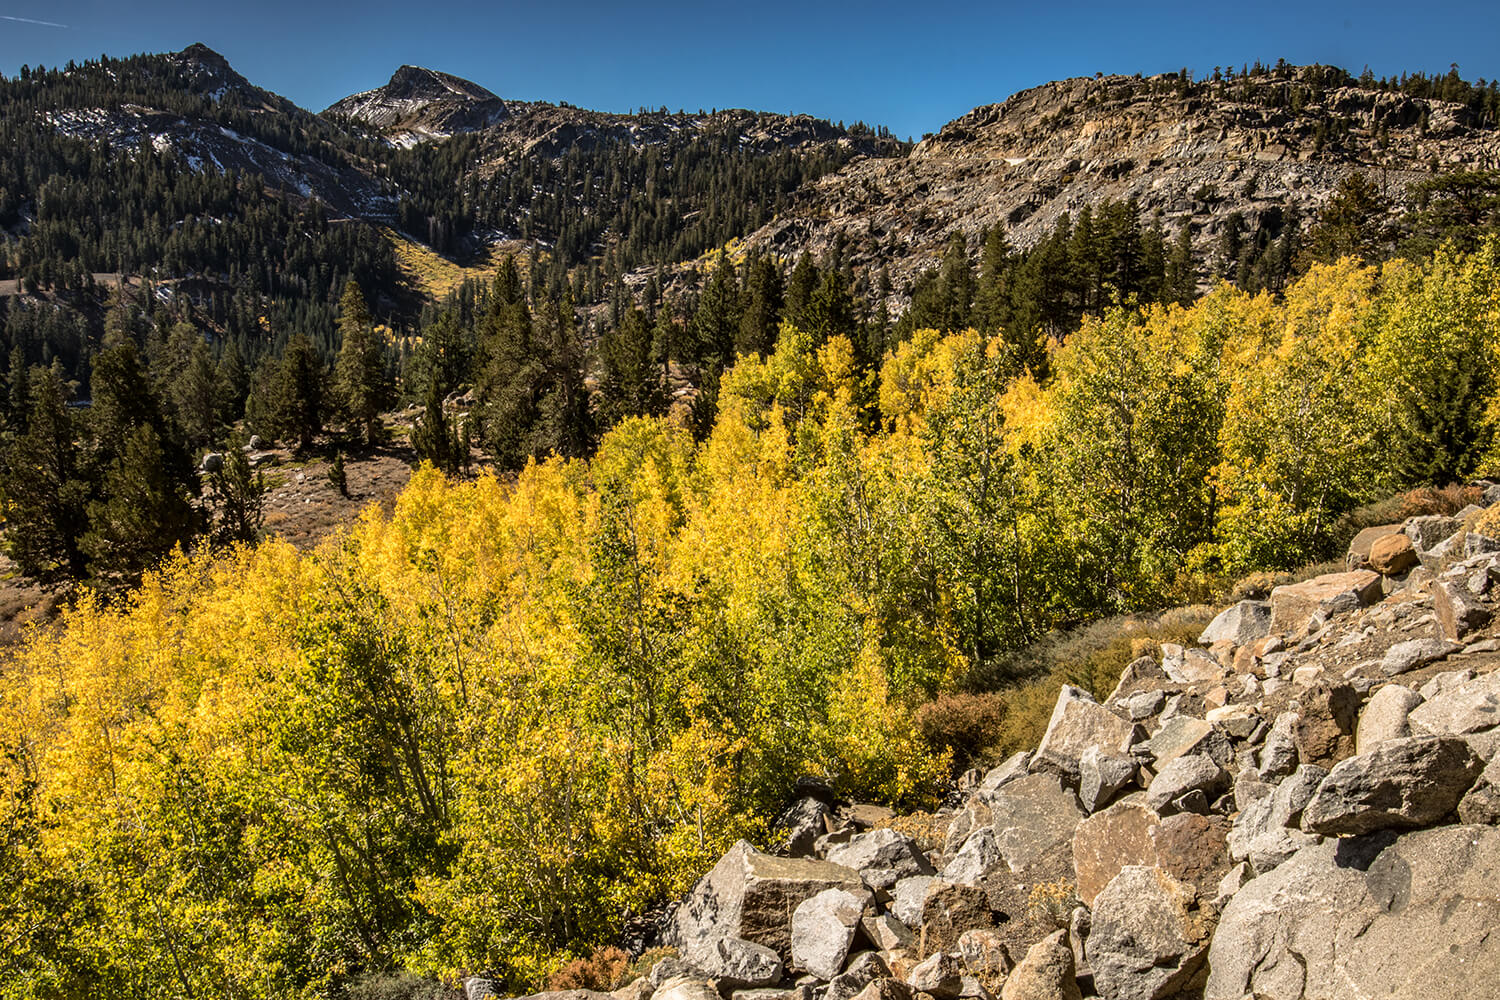 Fall Photography - Carson Pass Highway Fall Color